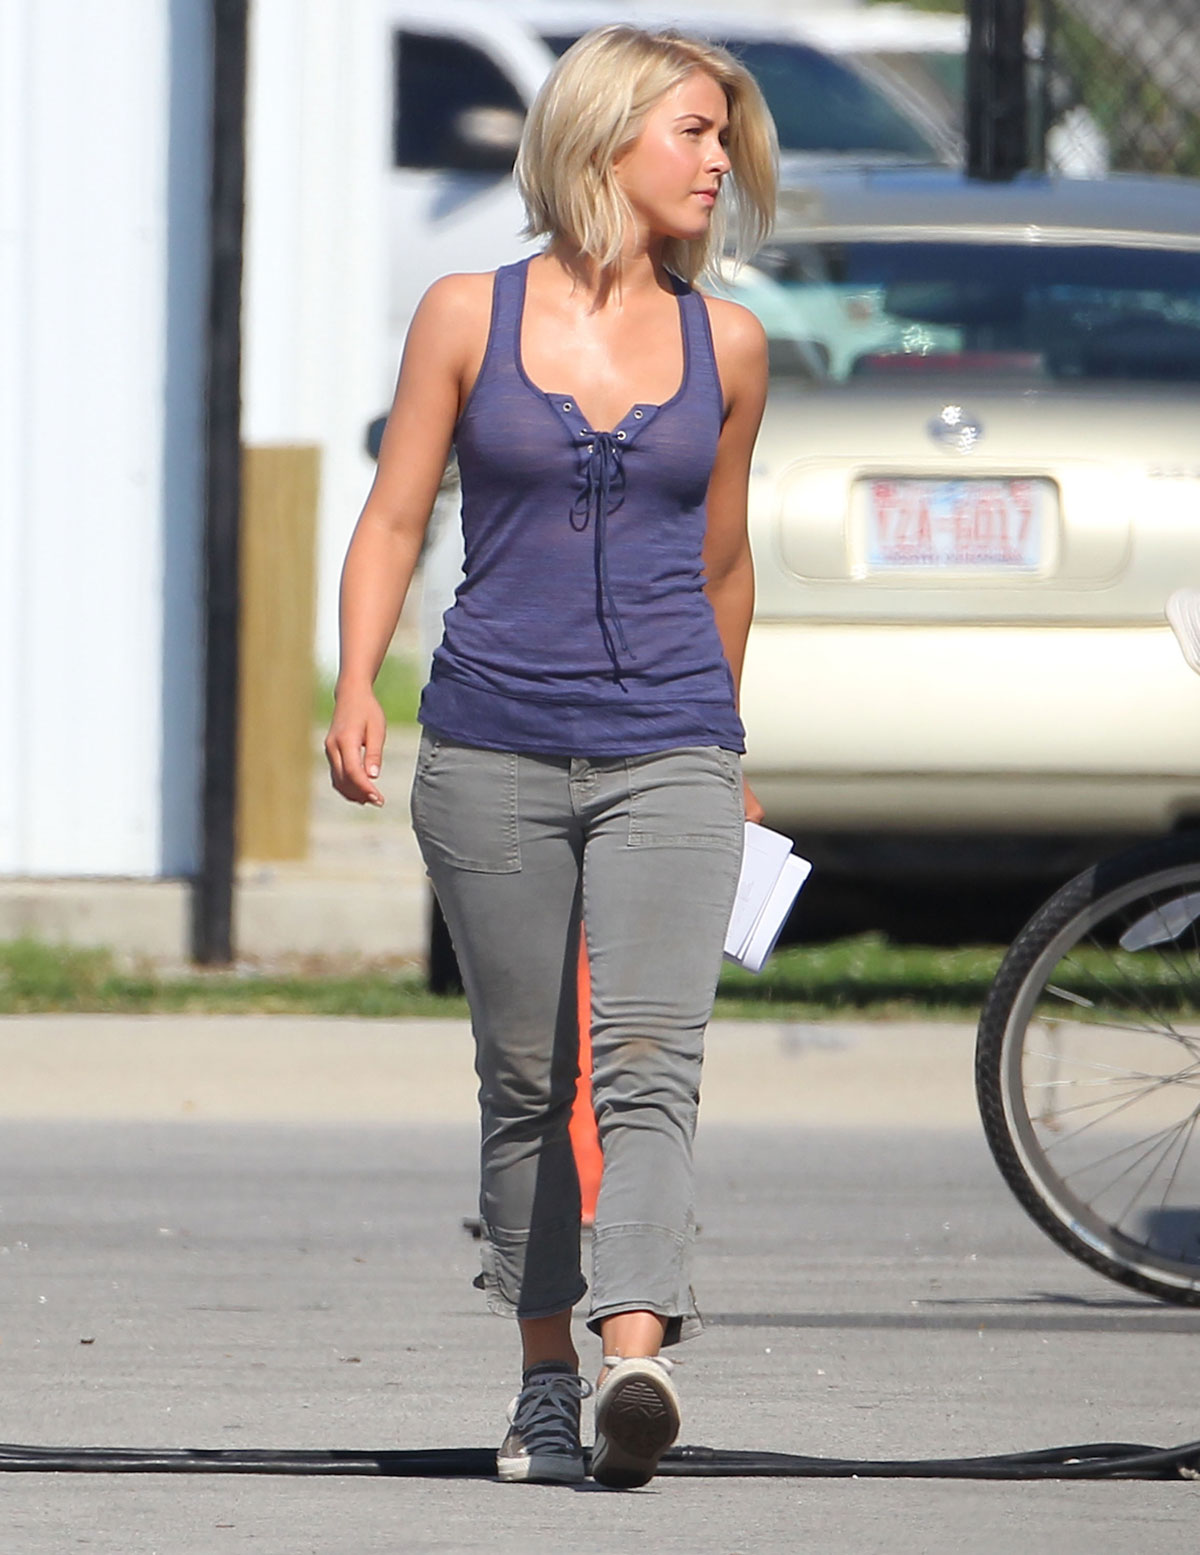 JULIANNE HOUGH in Purple Top on the Set of Safe Haven ...